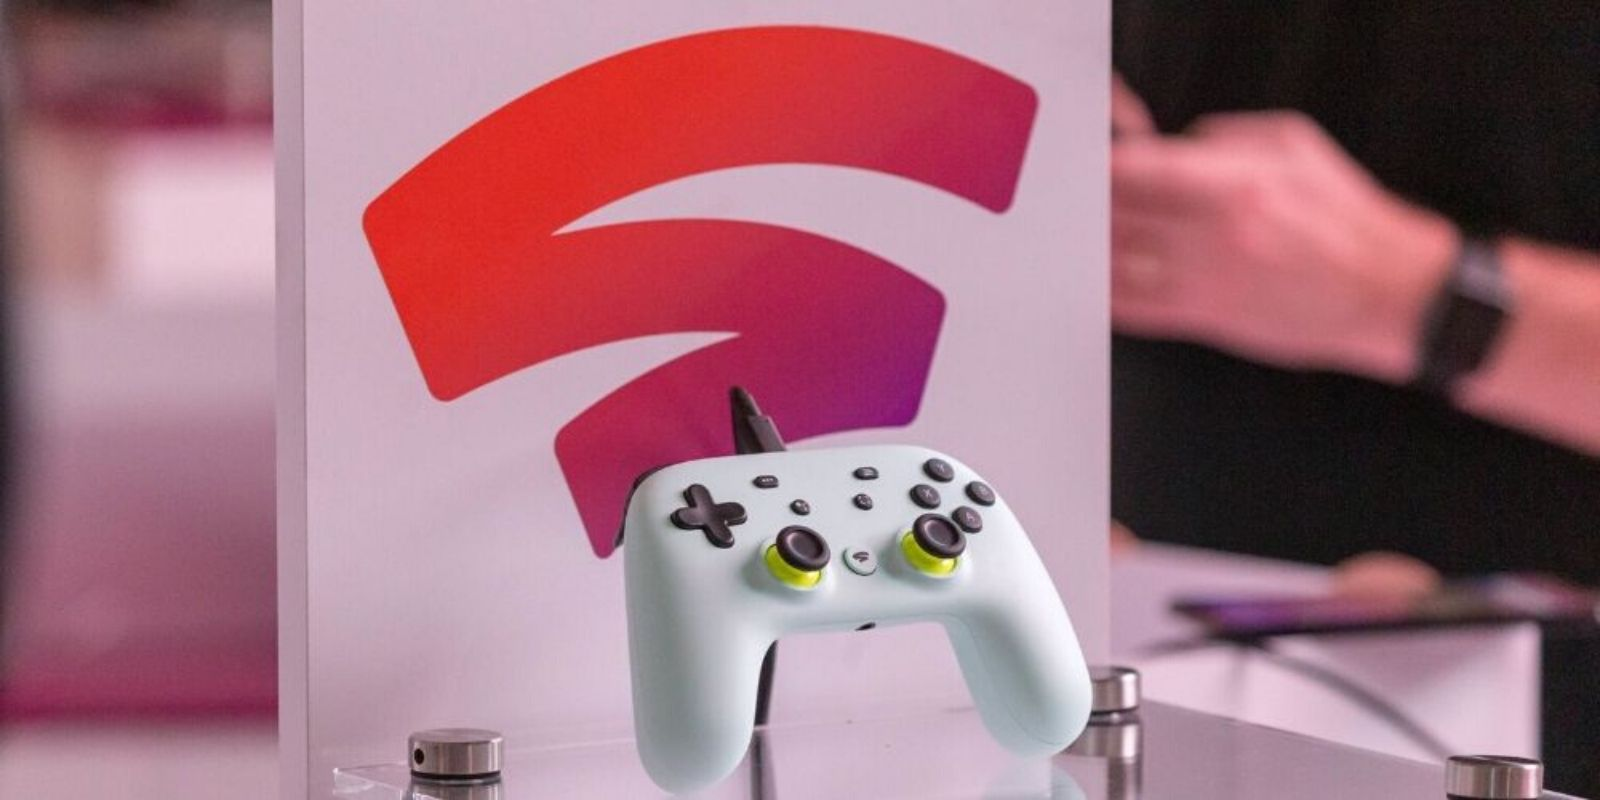 Stadia's disastrous launch harmed a game-changing product